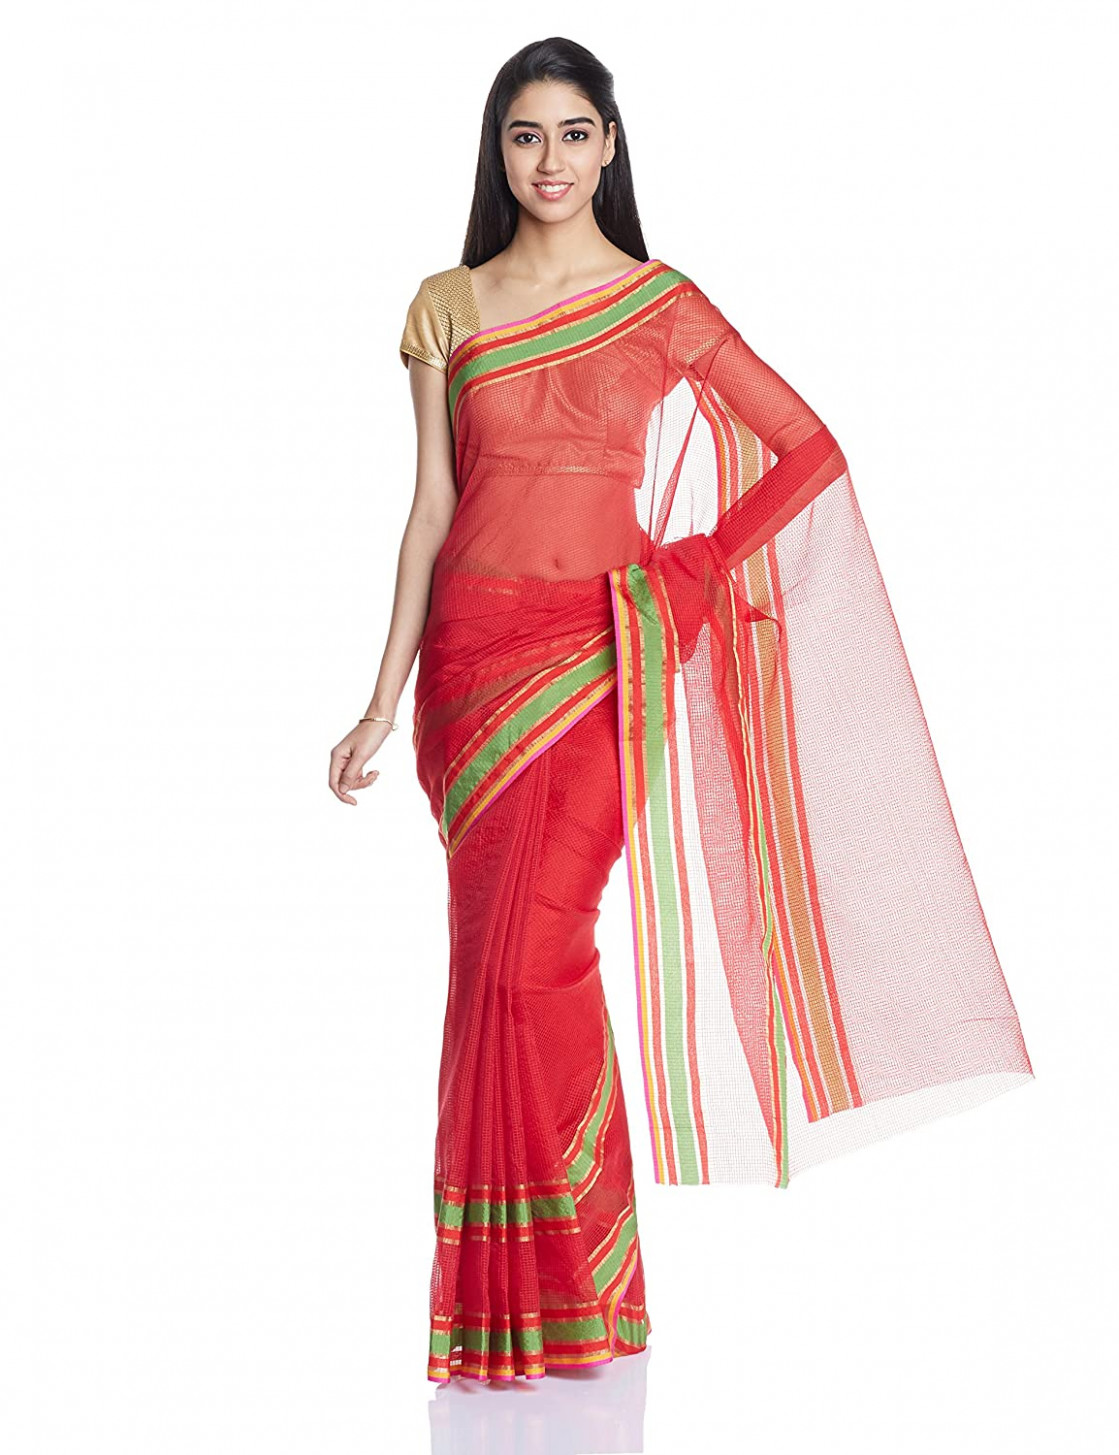 70% discount Boondh Net Saree with Blouse Piece @299 on  - amazon saree